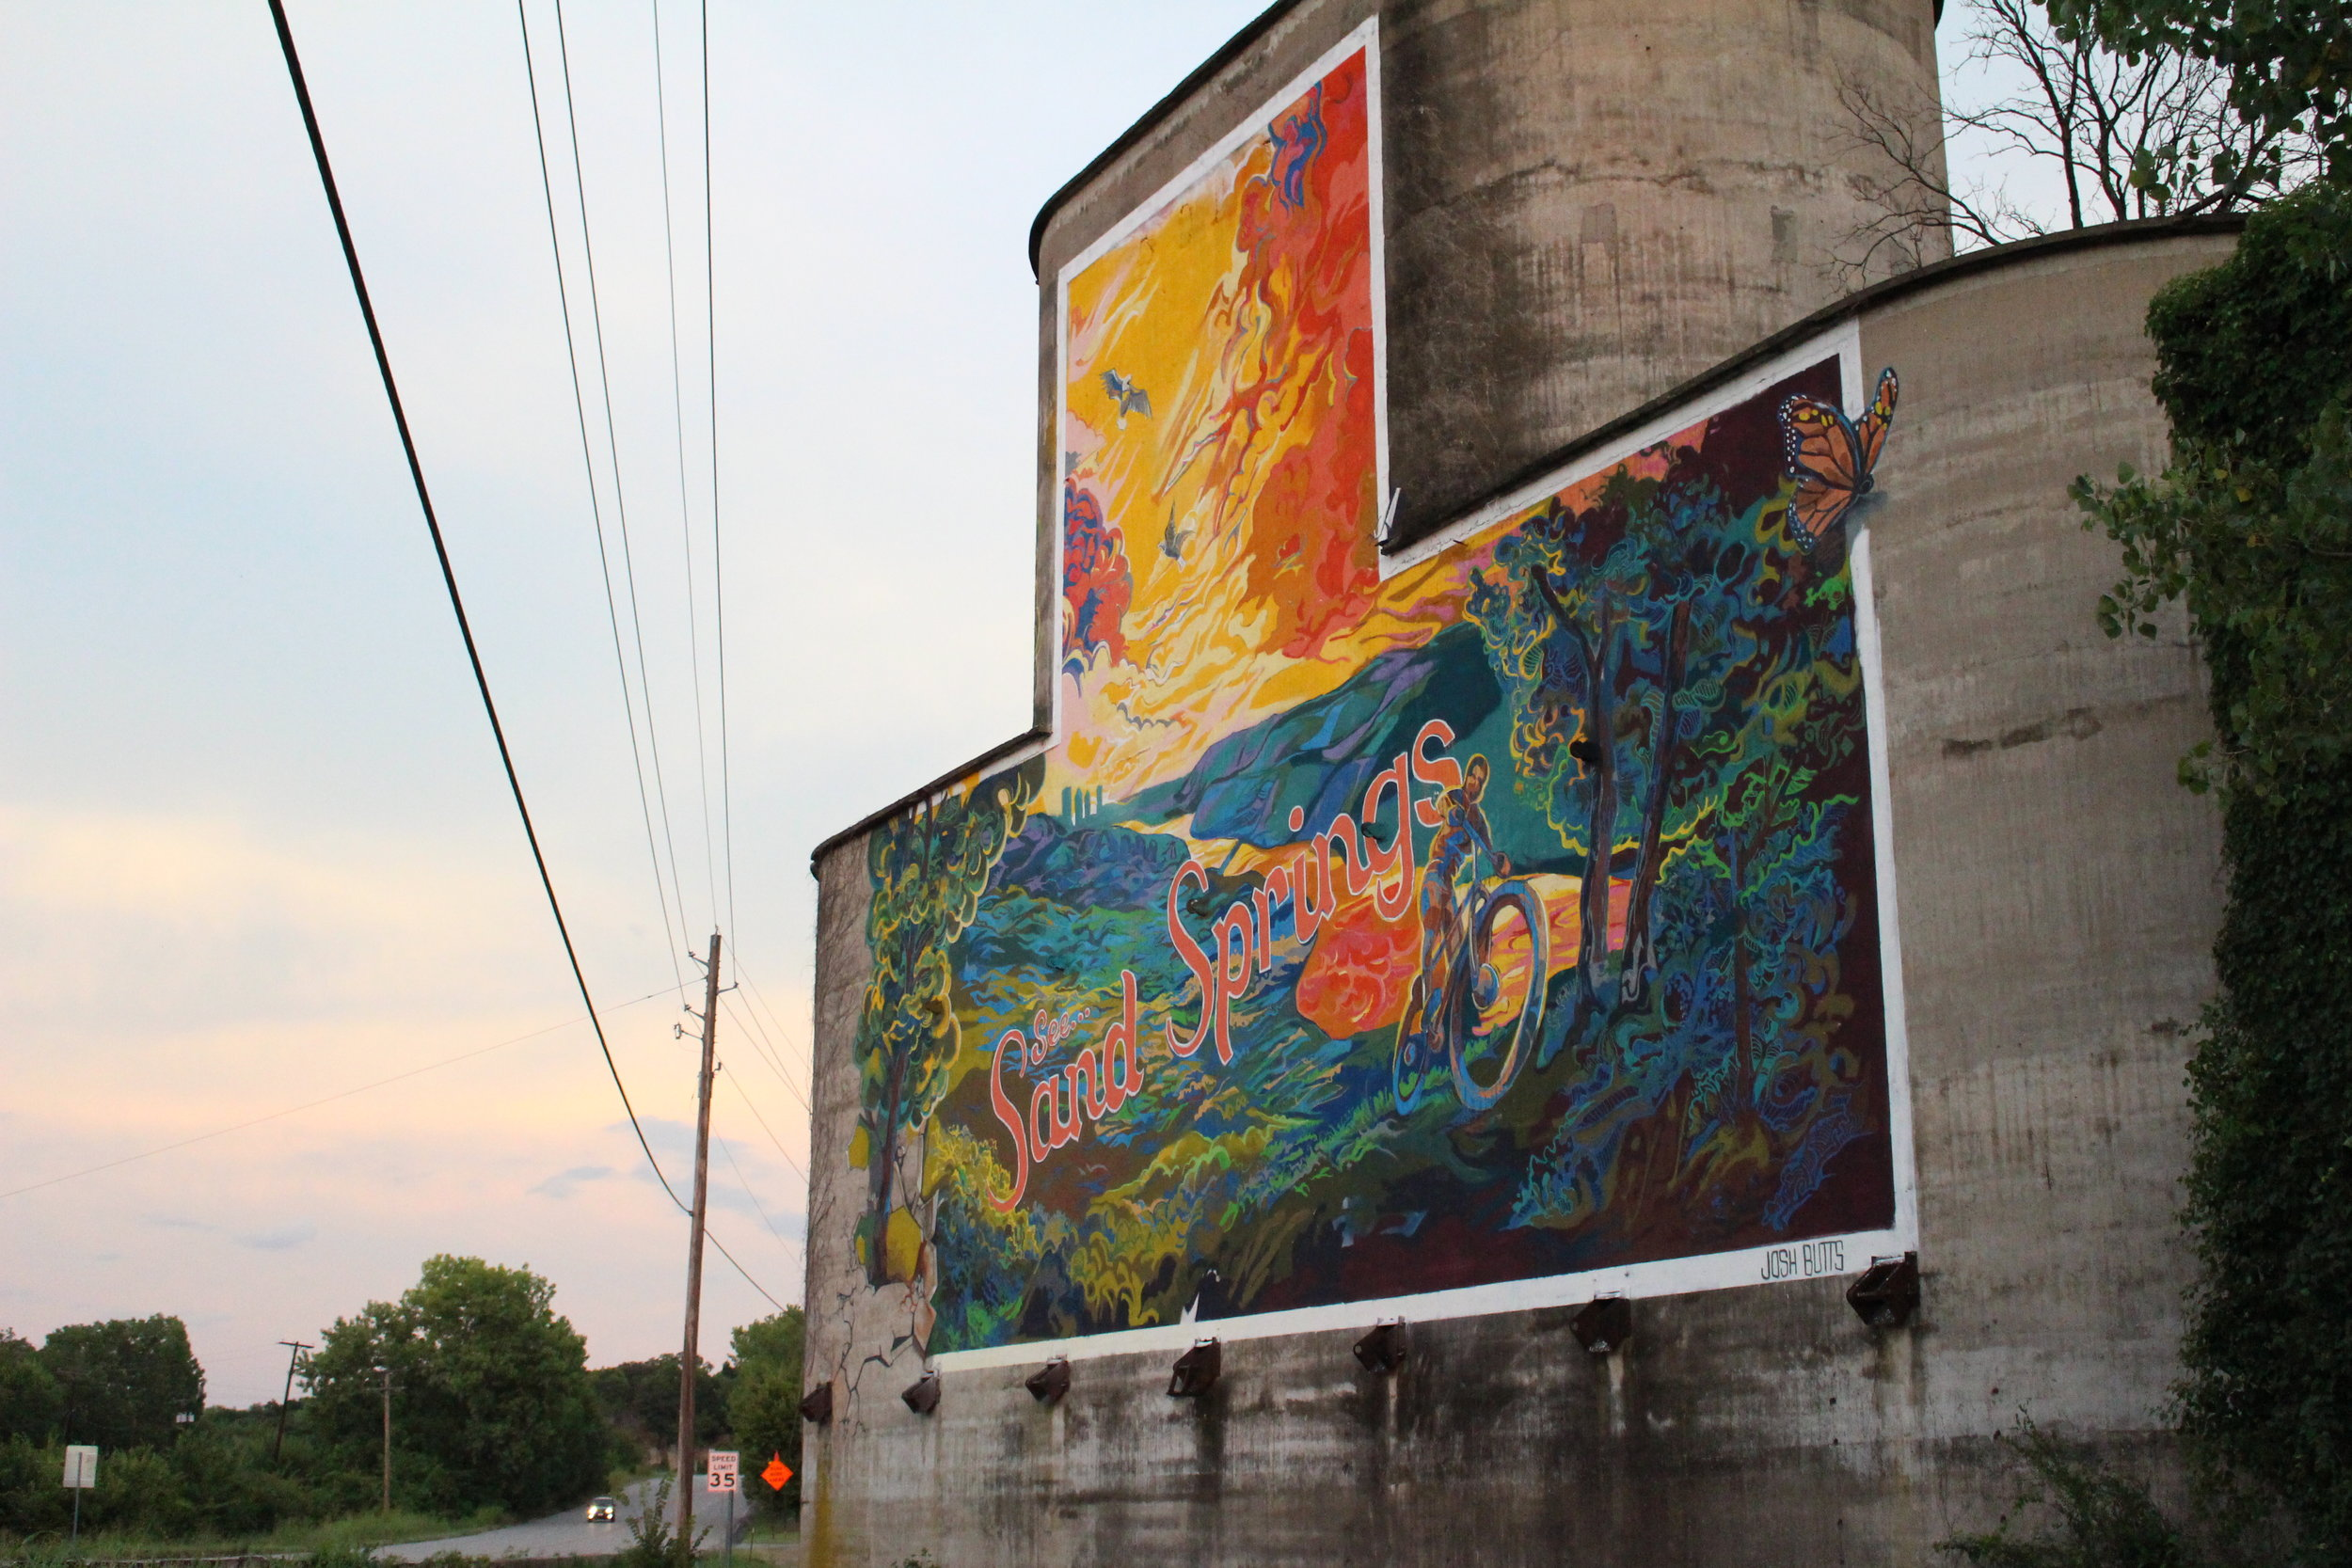 See Sand springs mural by josh butts - prattville 11450 west highway 51